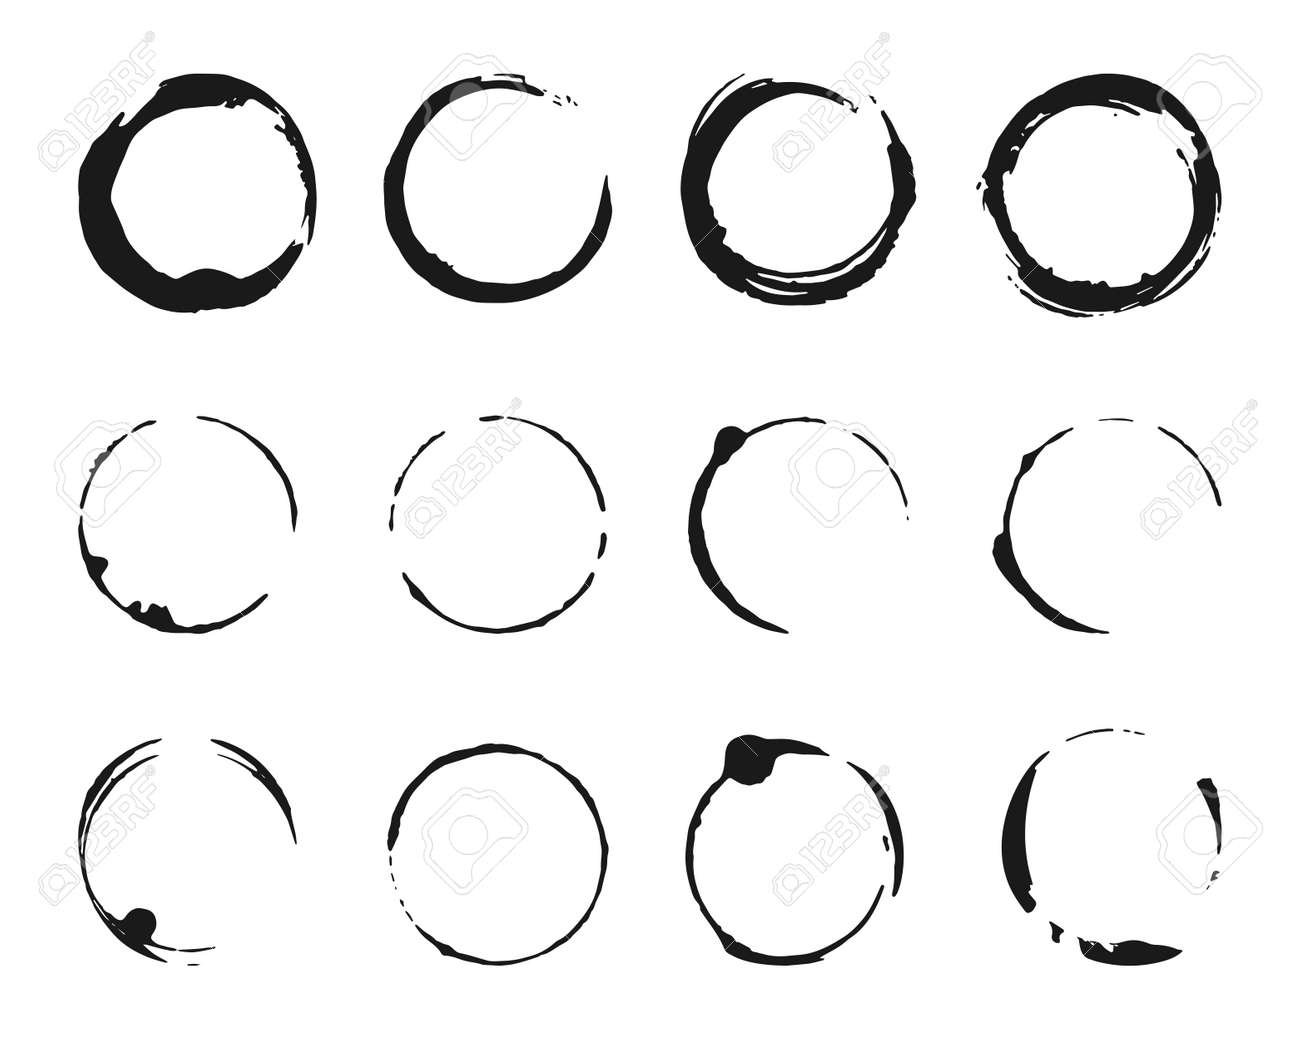 Set of brush strokes circles of paint. Grunge texture coffee ring stains. Template glyph for round frames, icons, design elements. Black abstract logo, label, circle. Isolated vector illustration - 151838636